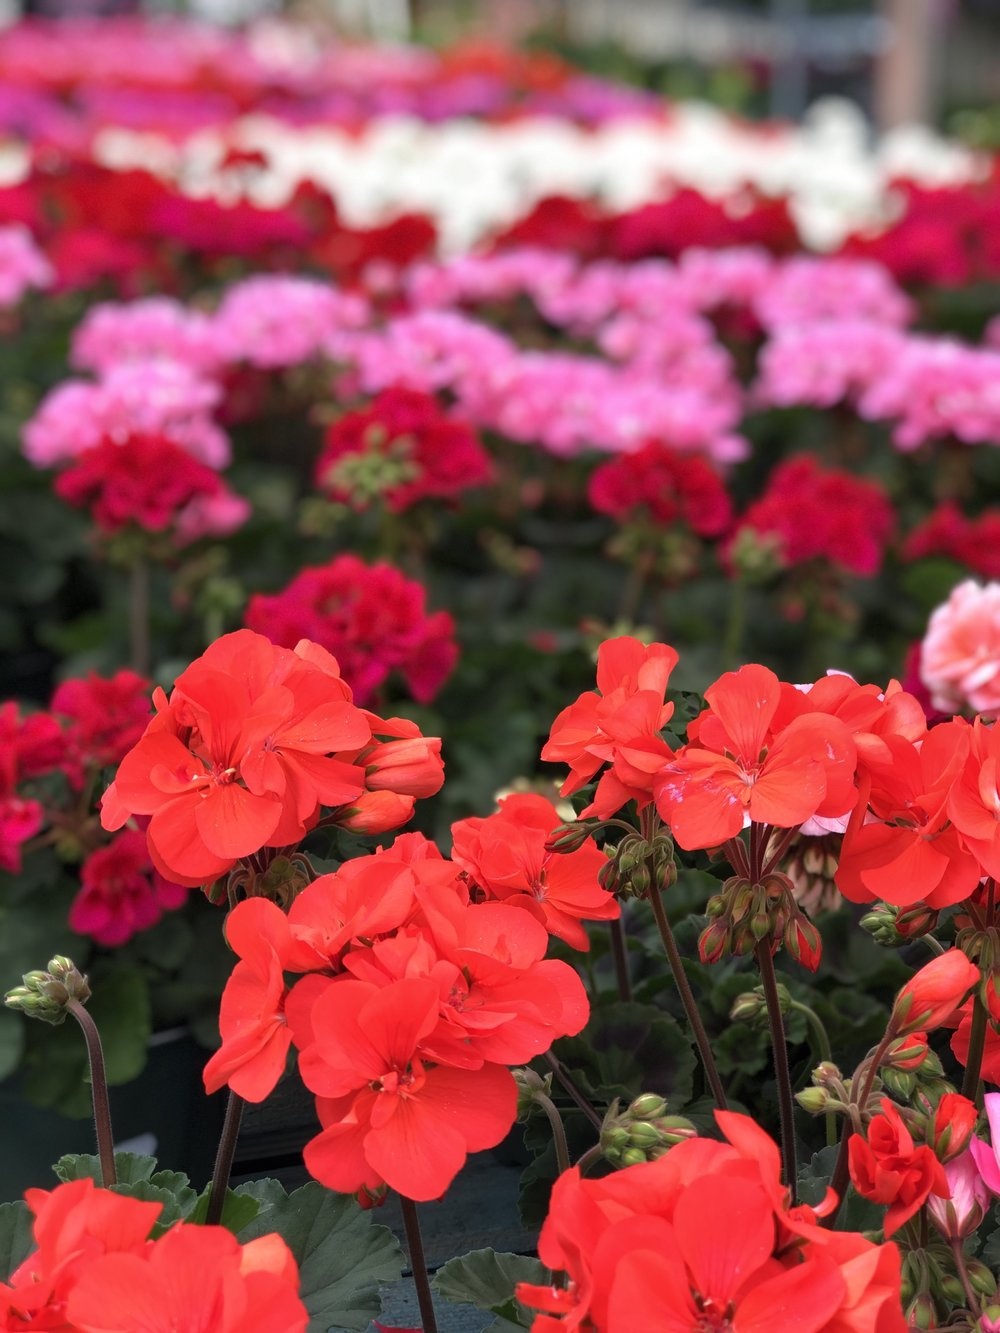 Geraniums in reds, pinks and whites at Russo's.